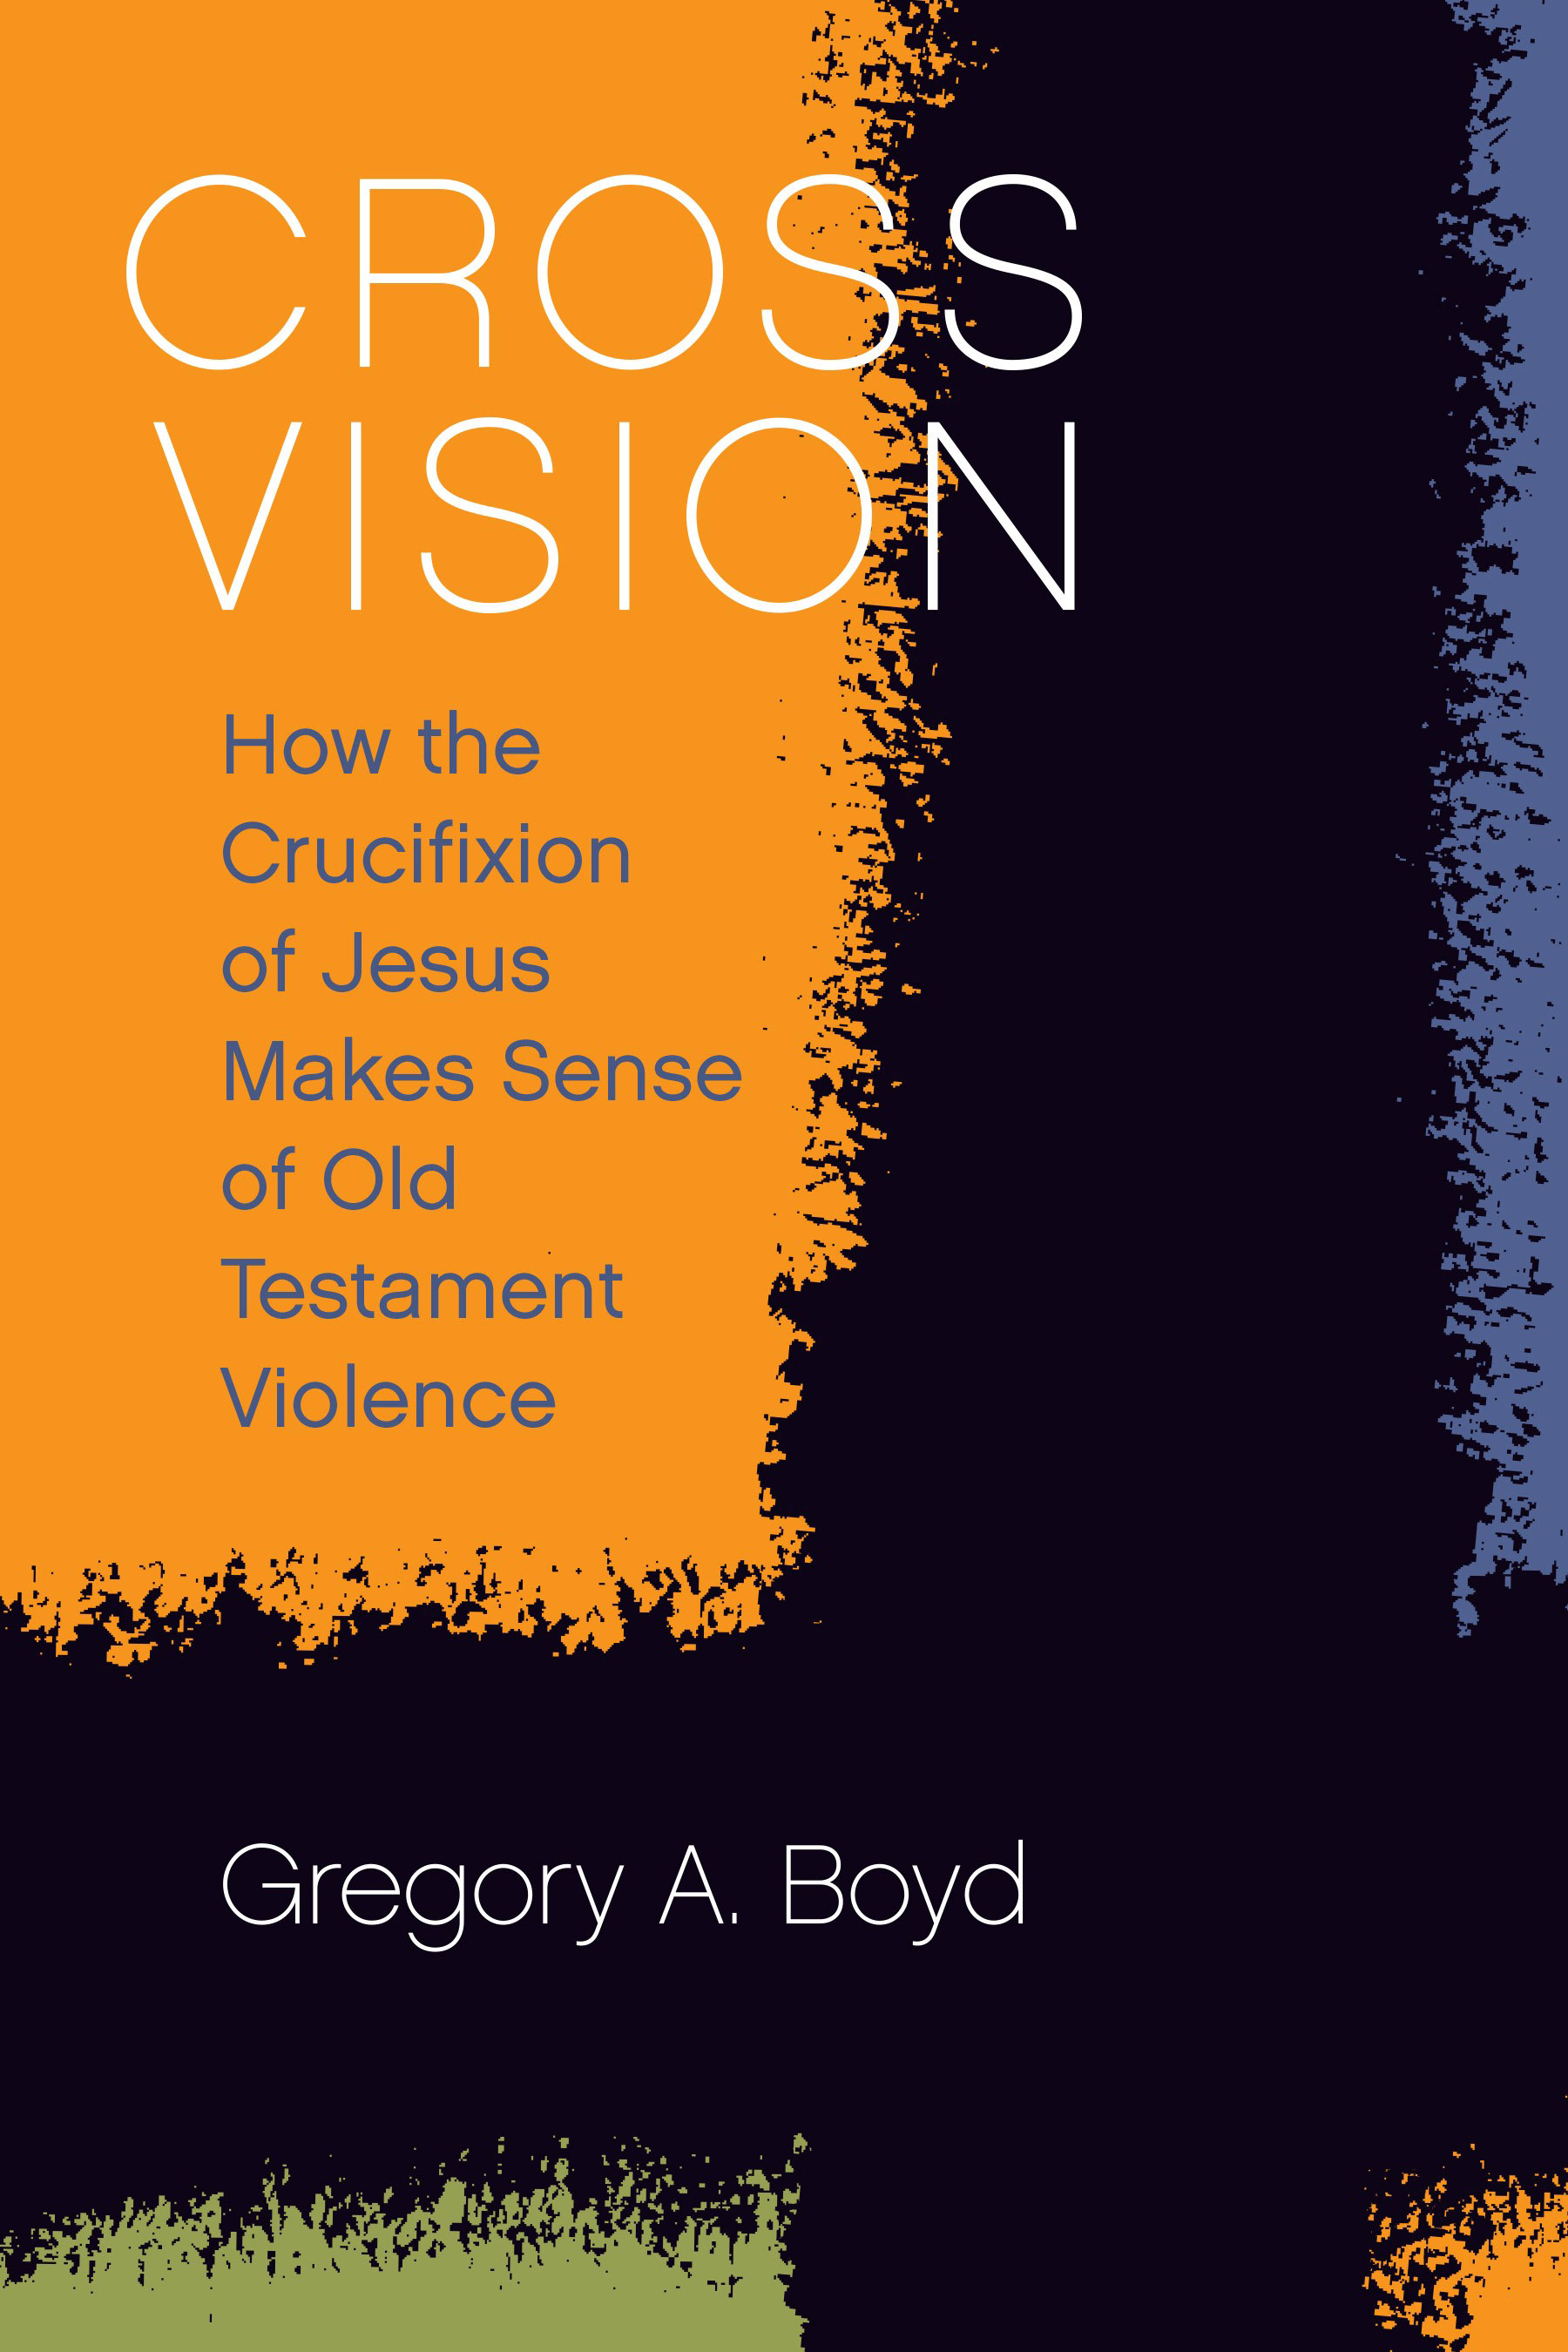 Cross Vision: How the Crucifixion of Jesus Makes Sense of Old Testament Violence (Theology for the People)